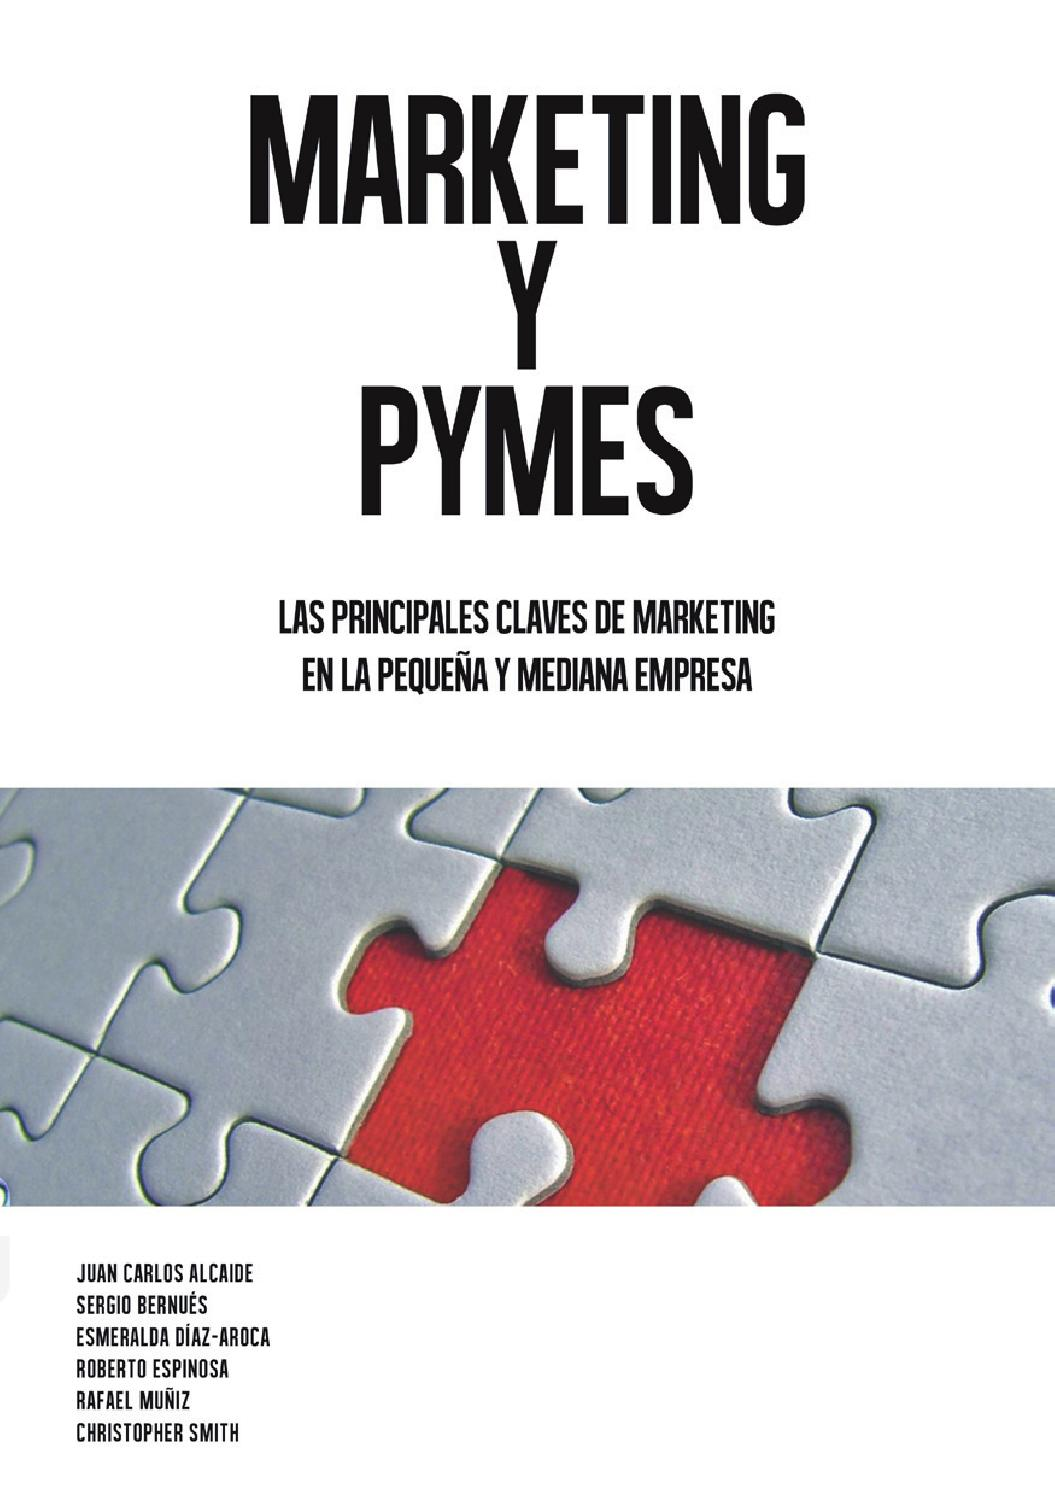 Marketing para pymes by Félix2401 - issuu